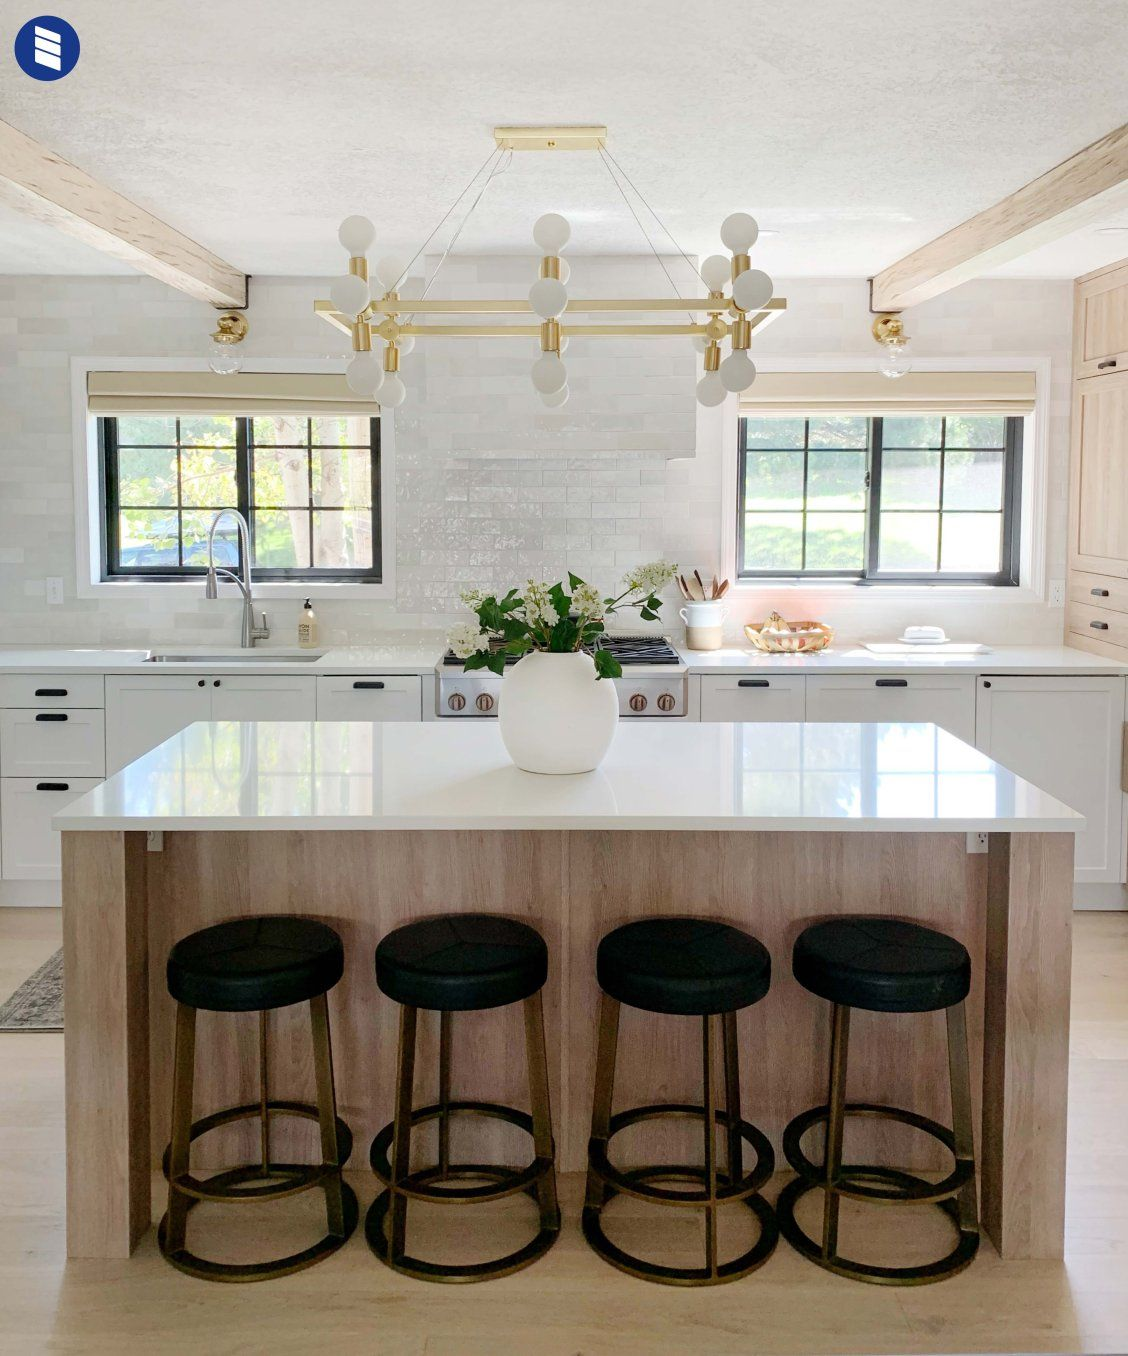 Chris Loves Julia S Kitchen Makeover Choosing Shades That Compliment Your View Instead Of Covering It Blinds Com Contemporary Kitchen Small Kitchen Decor Woven Wood Shades